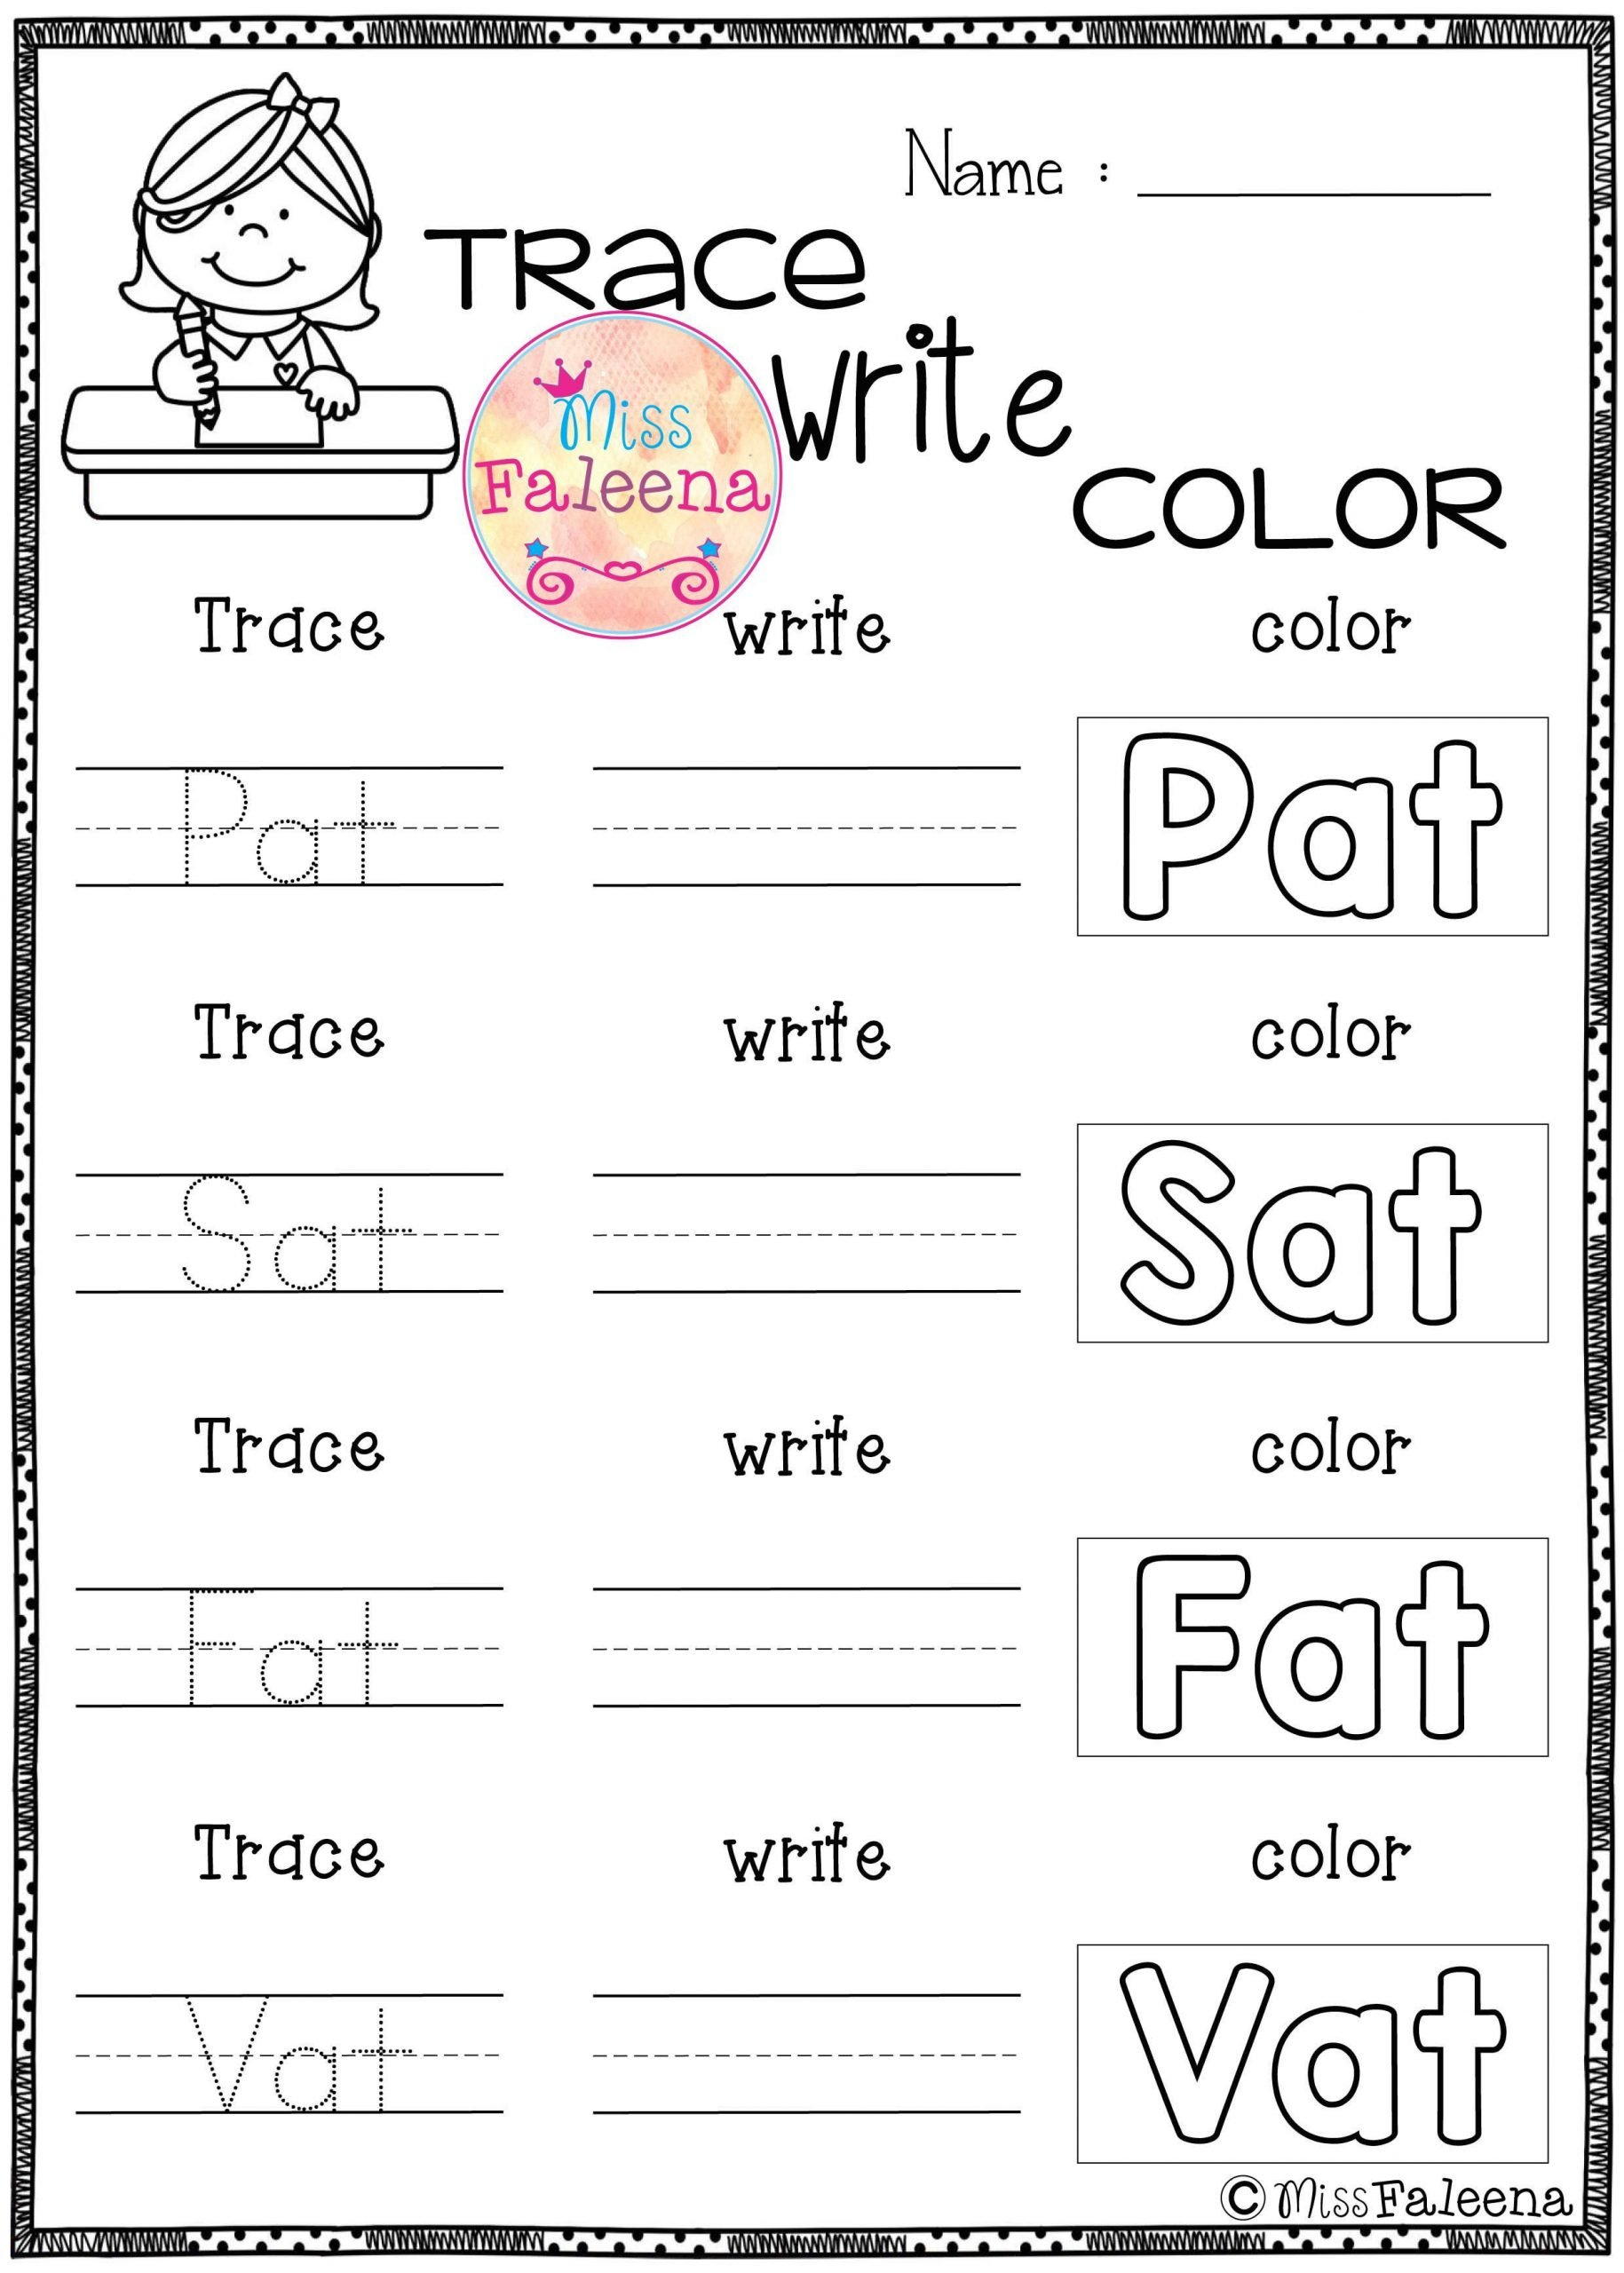 Cvc Words Worksheet Kindergarten Cvc Word Short A Exercise